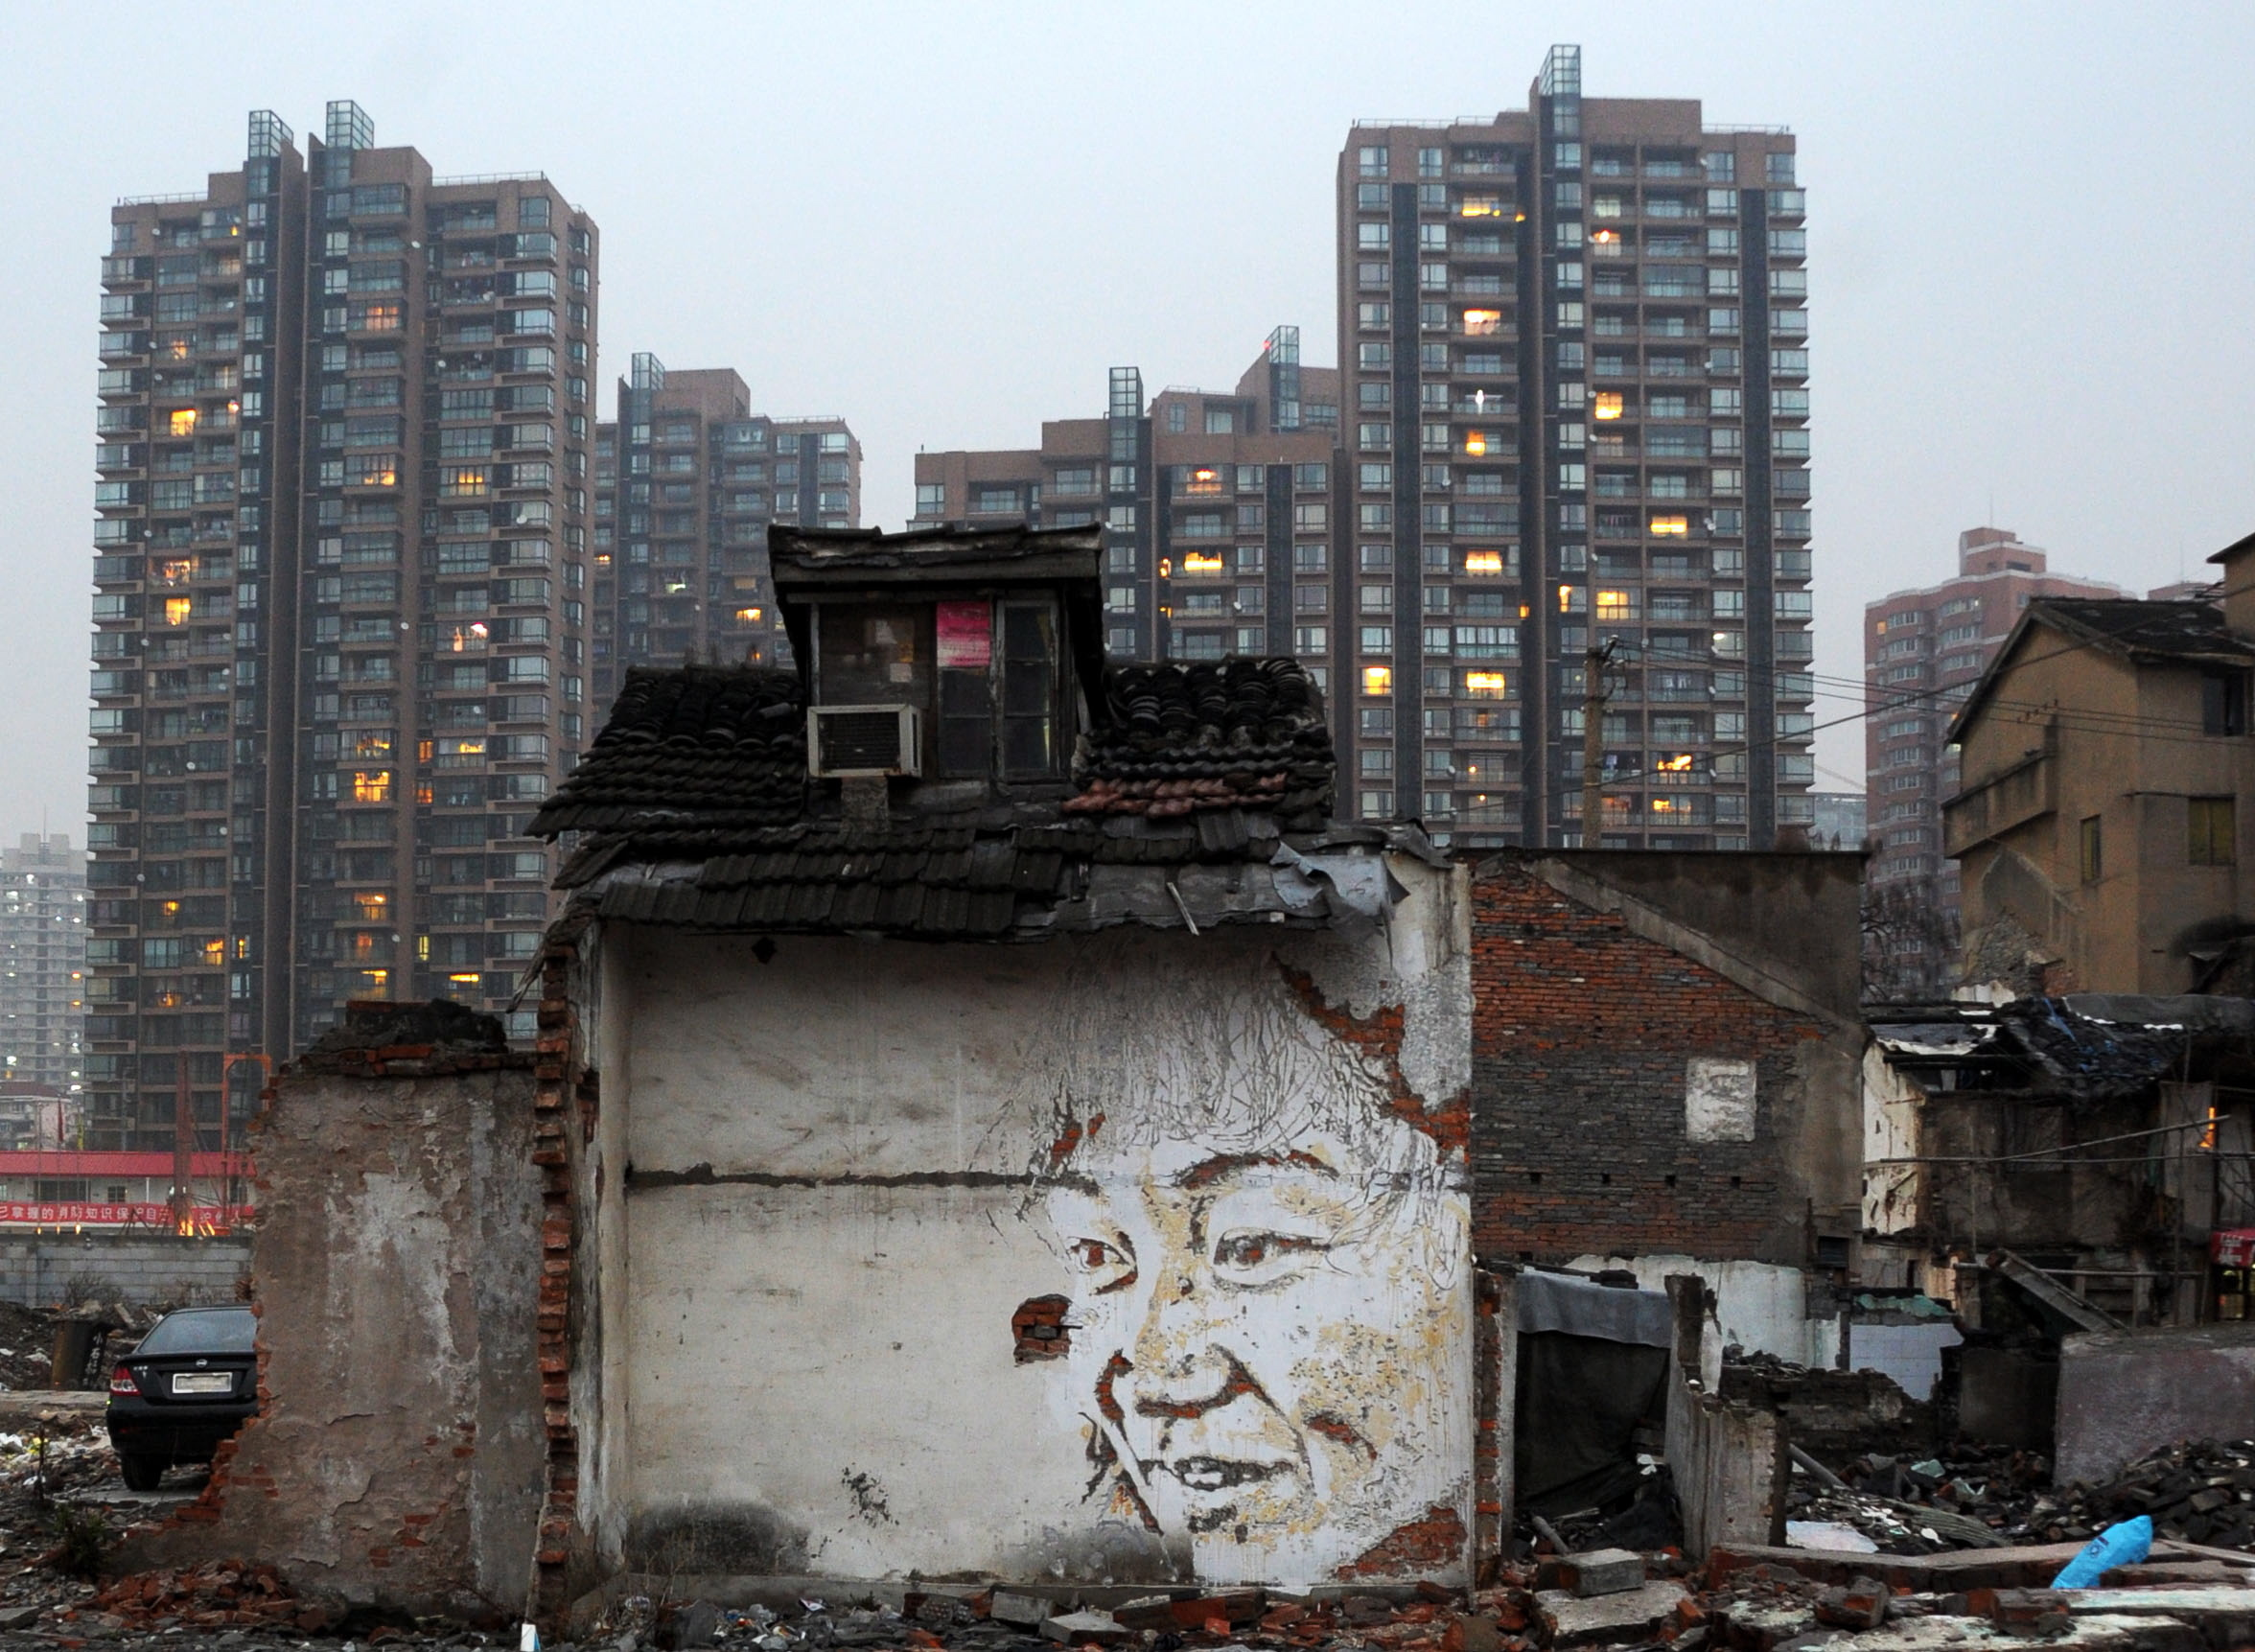 The face of a woman who used to live in the demolished residential block is seen carved into a remaining wall by street artist Vhils and his team in Shanghai on March 1, 2012.